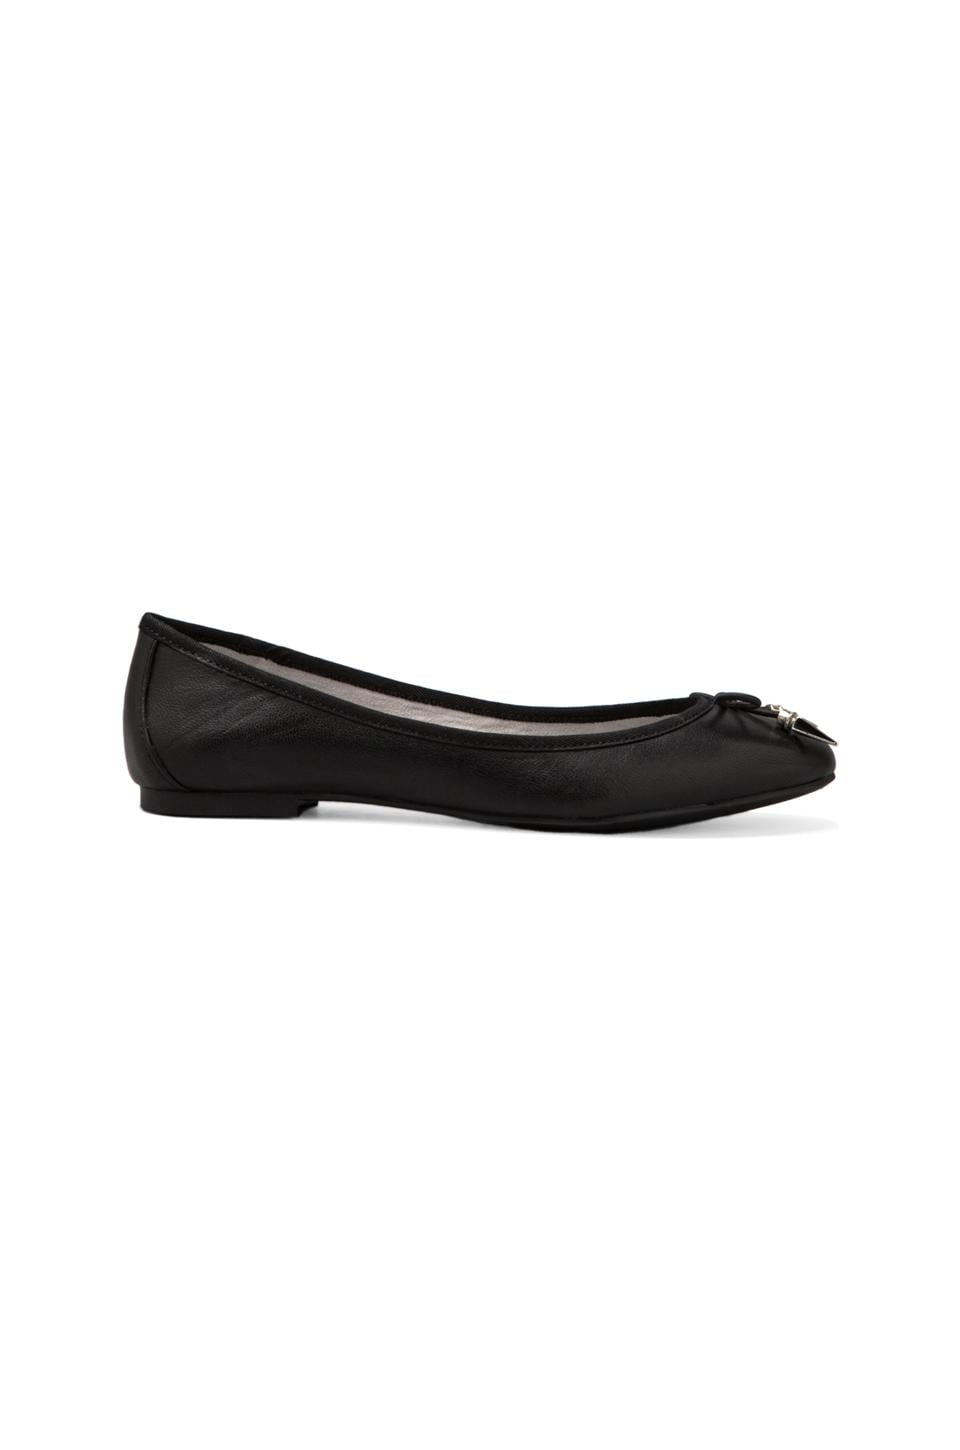 Circus by Sam Edelman Ali Flat in Black